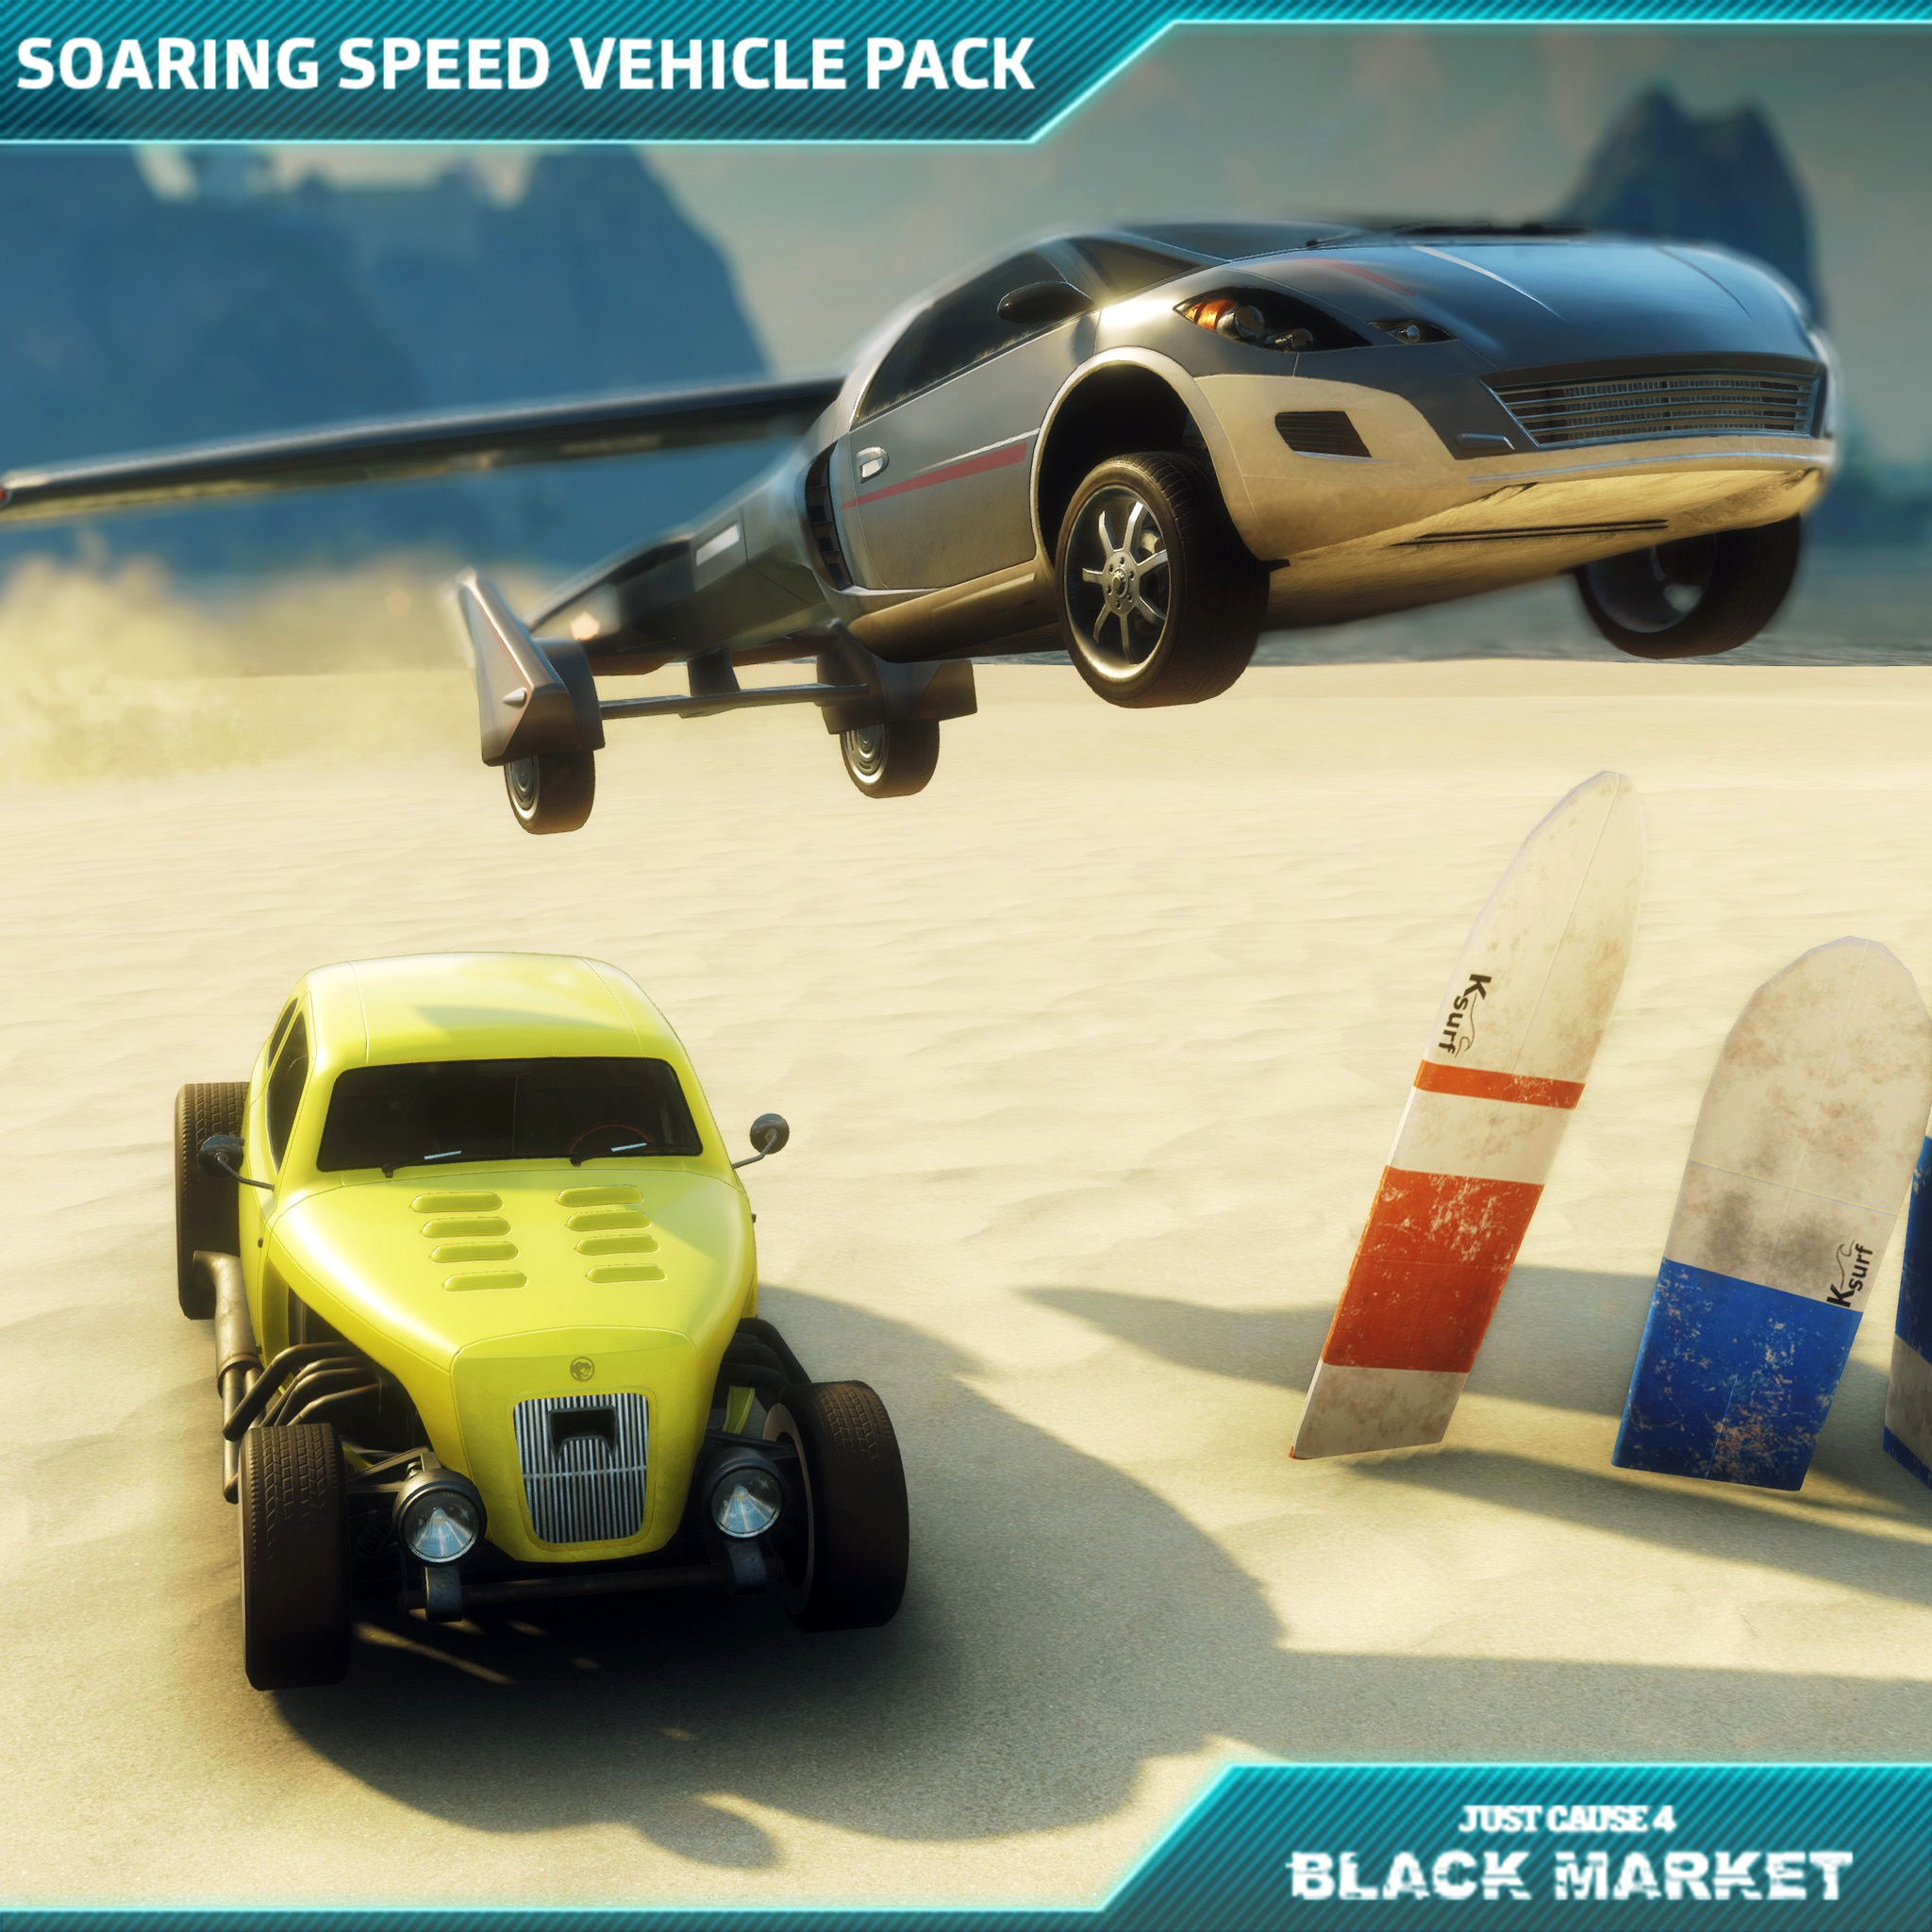 Just Cause 4 - Soaring Speed Vehicle Pack